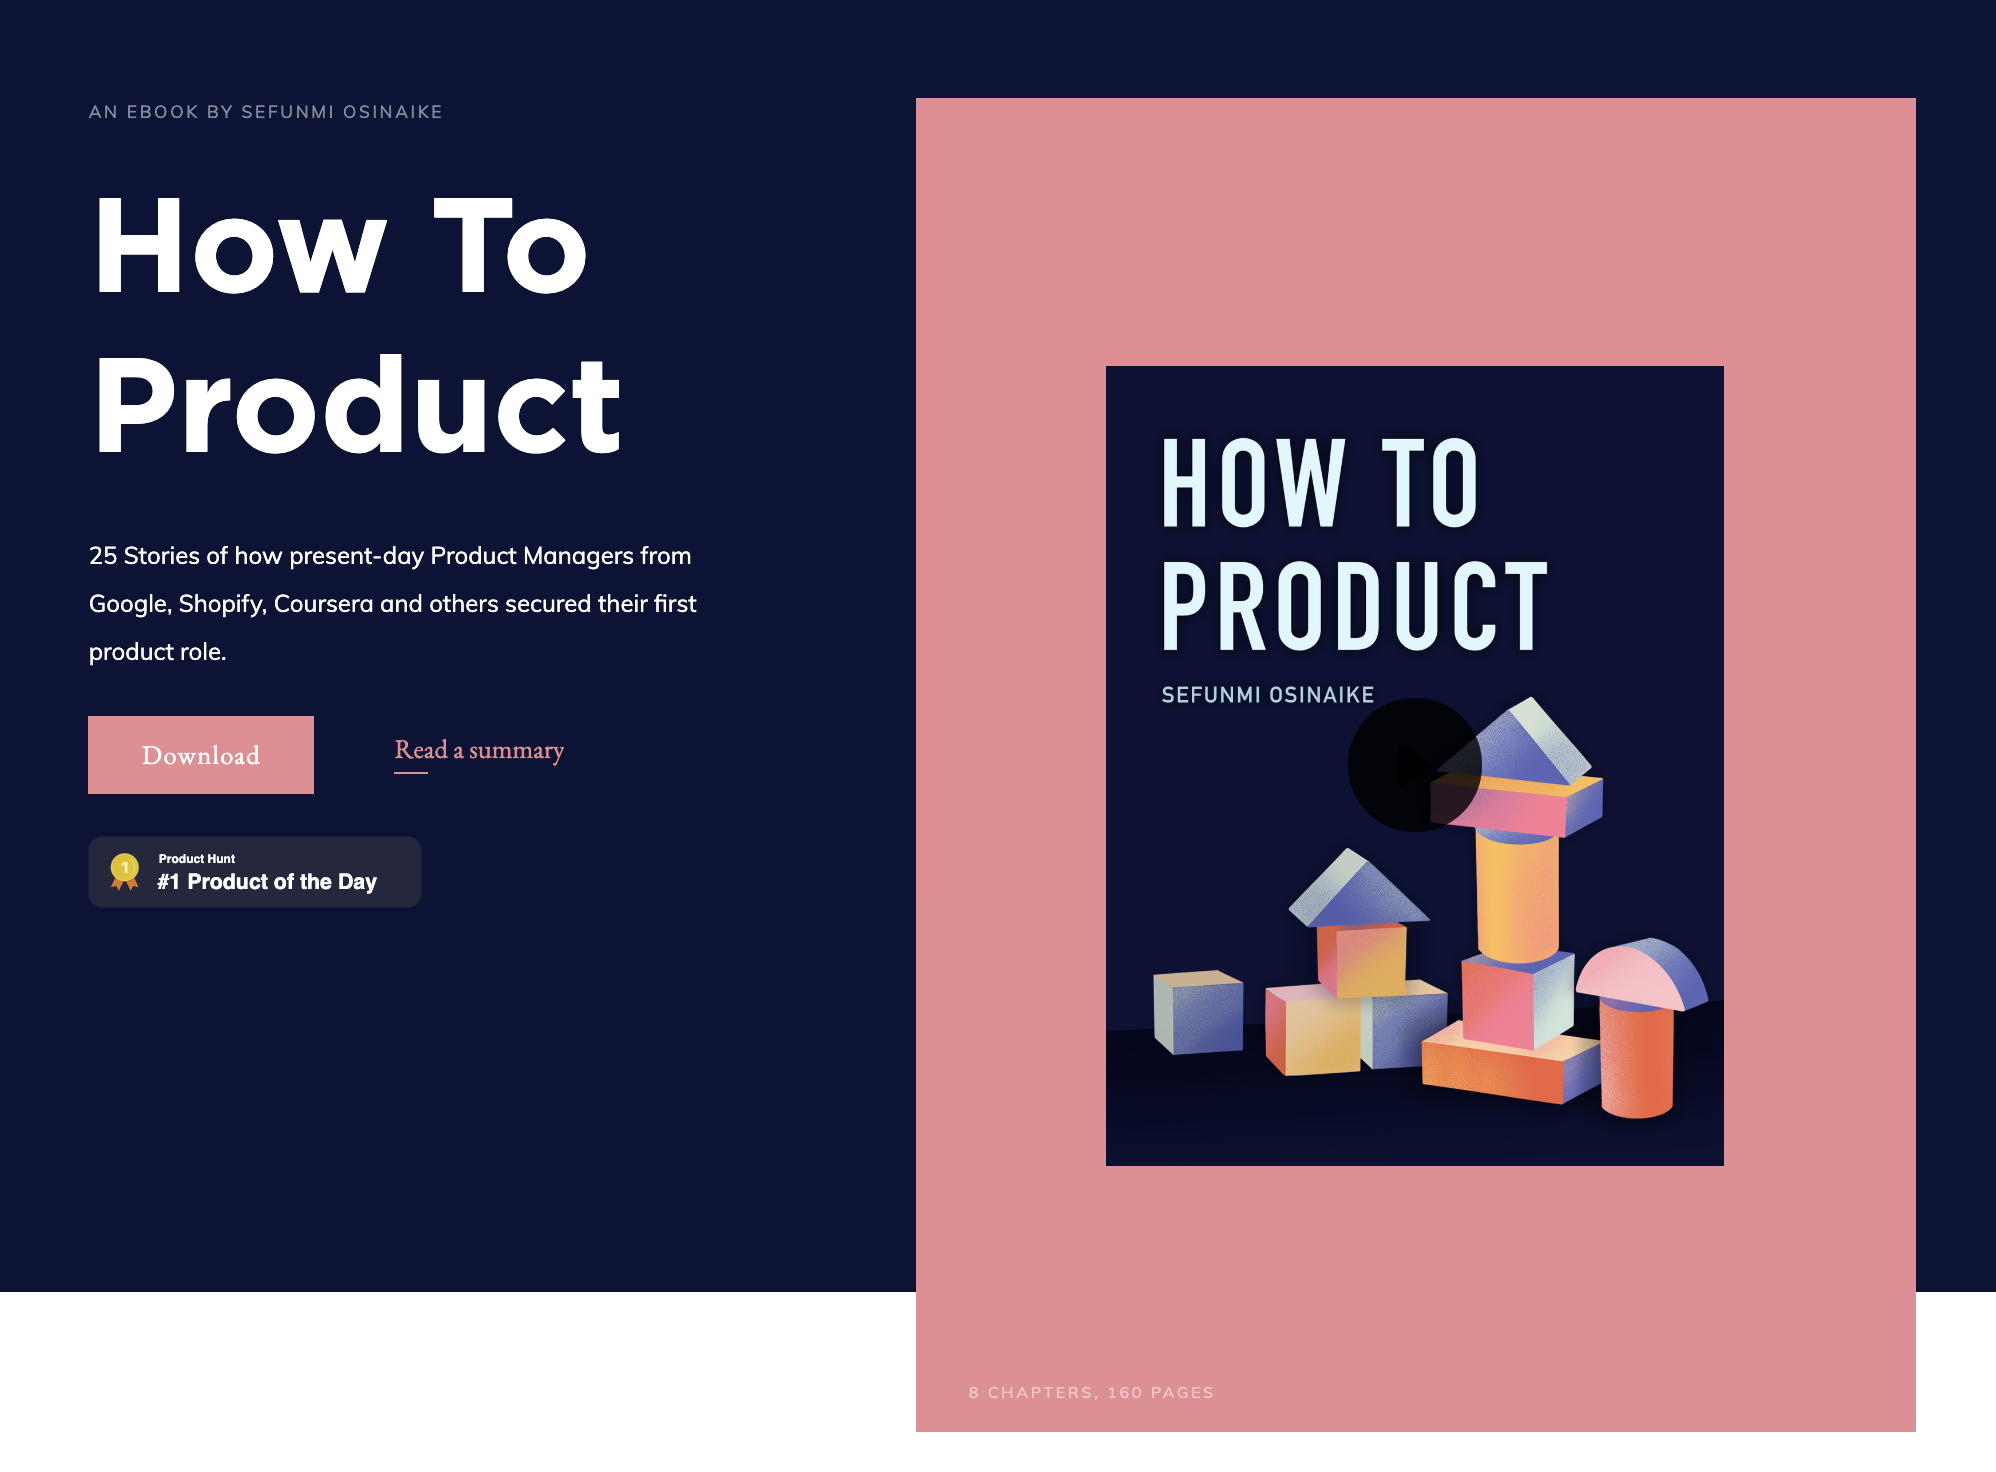 How To Product ebook landing page -  credibility coming from 25 present-day product managers who contributed to the piece of content.